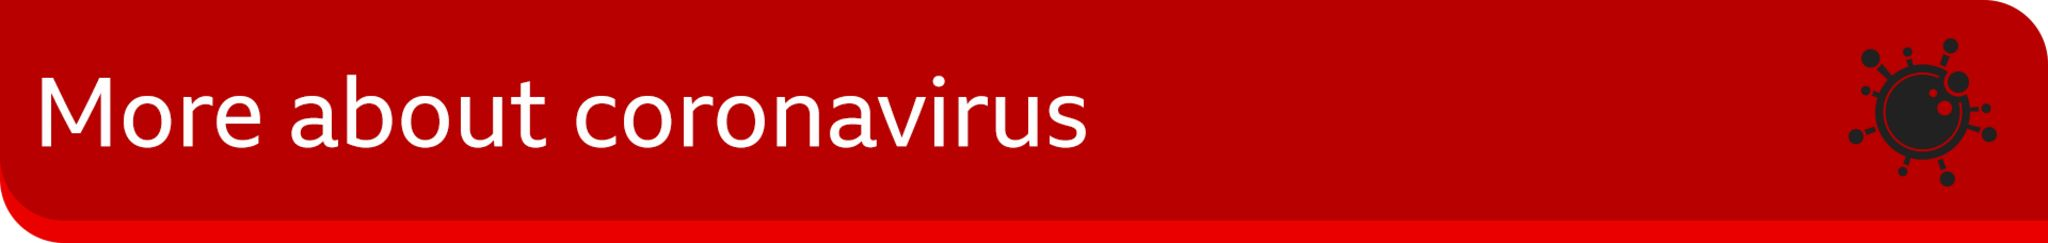 Banner image reading 'more about coronavirus'